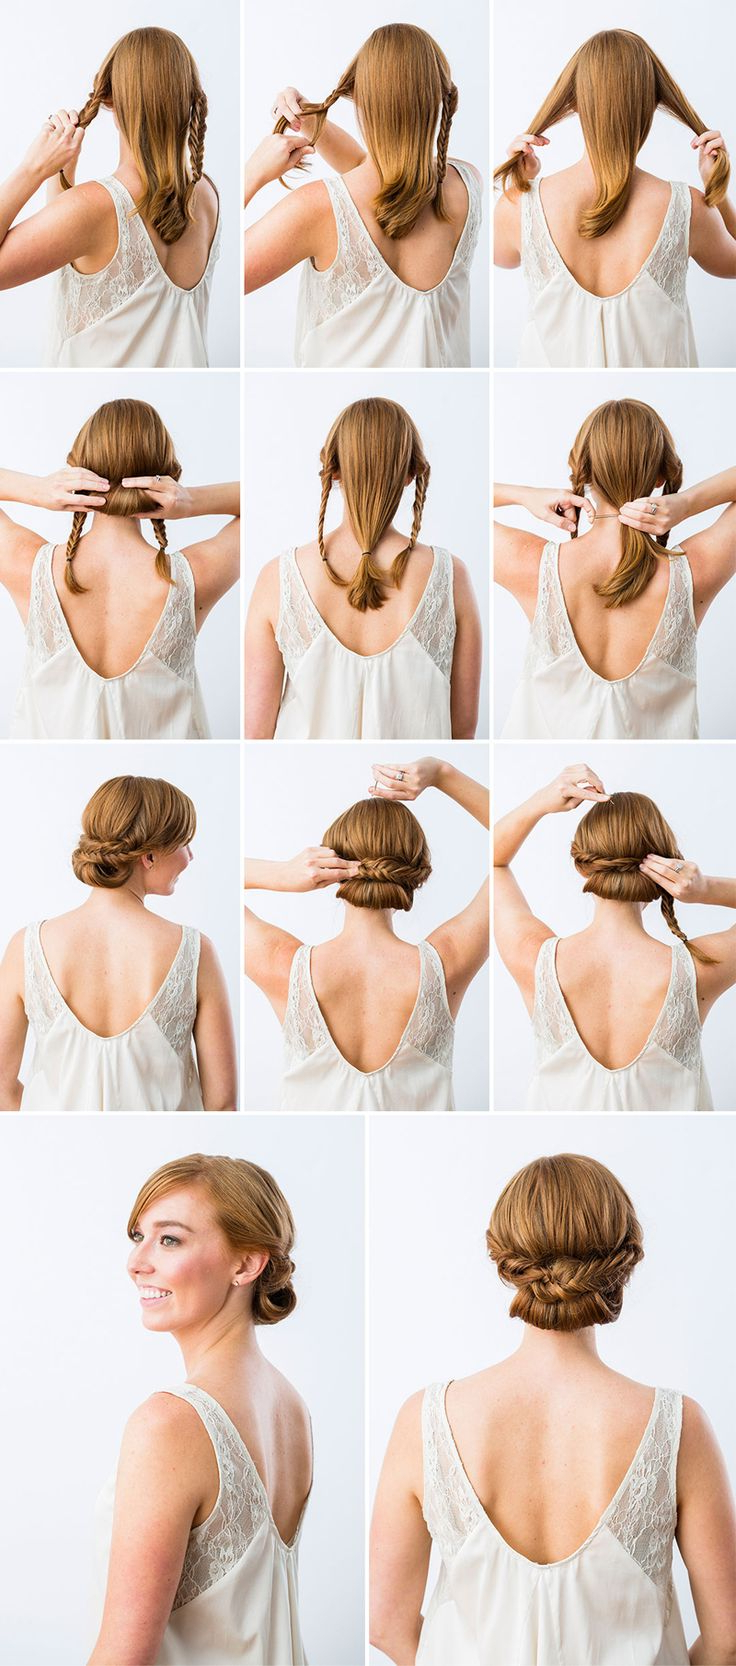 Hairstyle Ideas Regarding Most Recent Simplified Waterfall Braid Wedding Hairstyles (View 17 of 20)